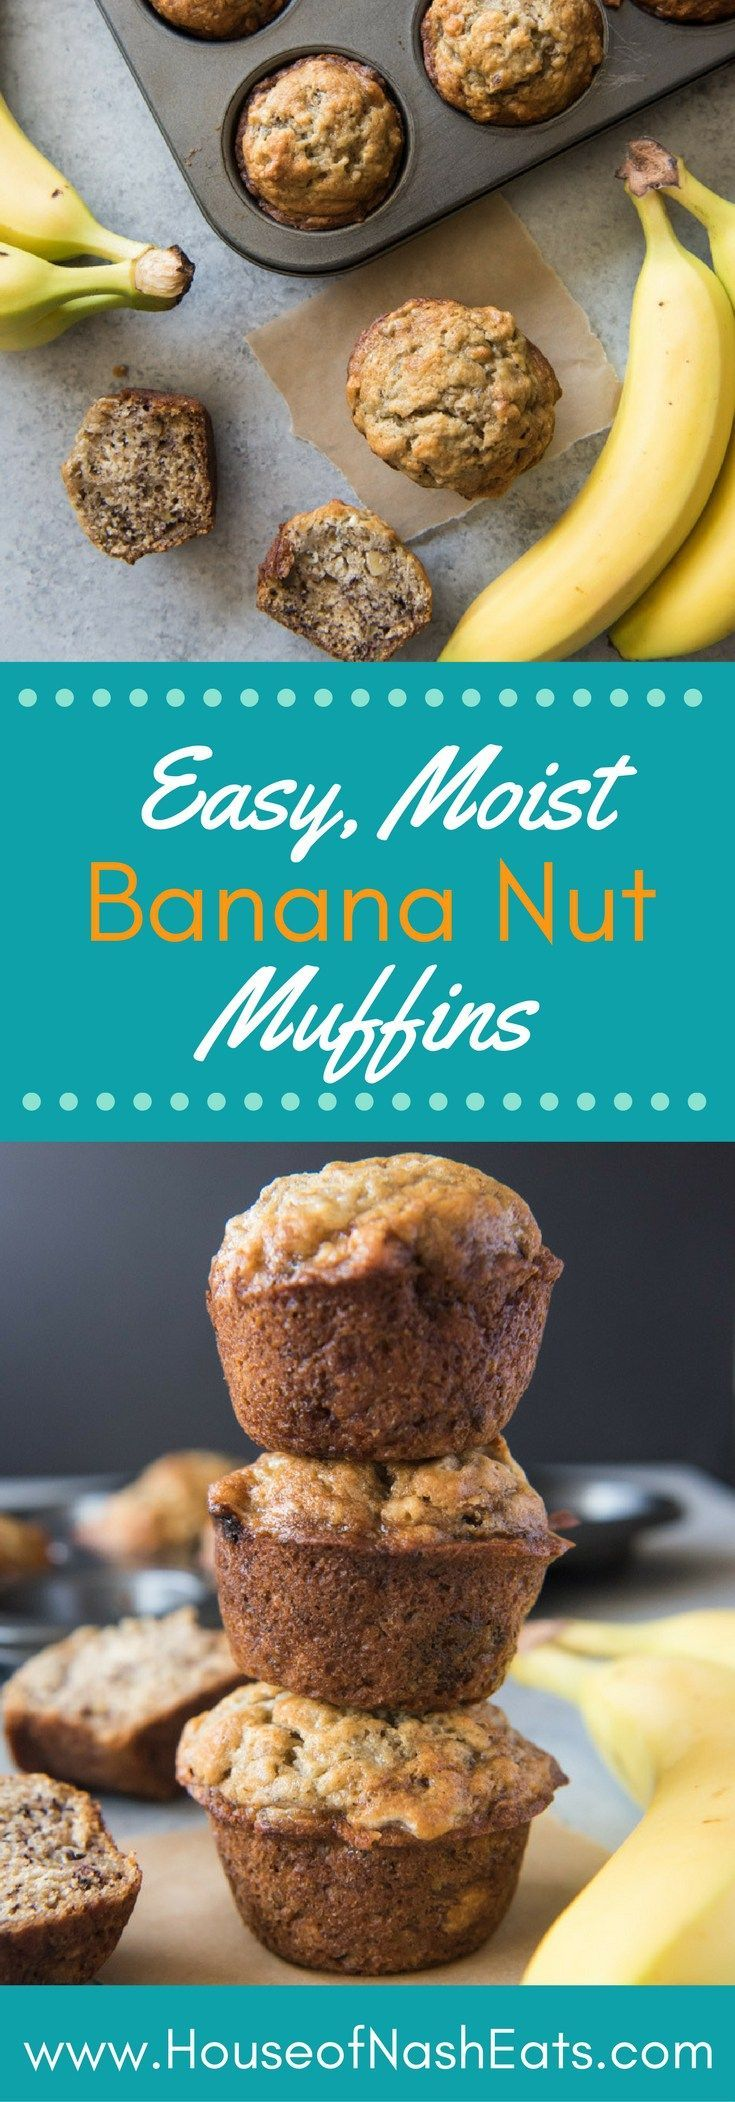 These soft, moist, easy banana nut muffins are loaded with banana flavor and studded with walnuts for a little crunch.  No need for a mixer - just use one bowl and stir everything together with a wooden spoon!